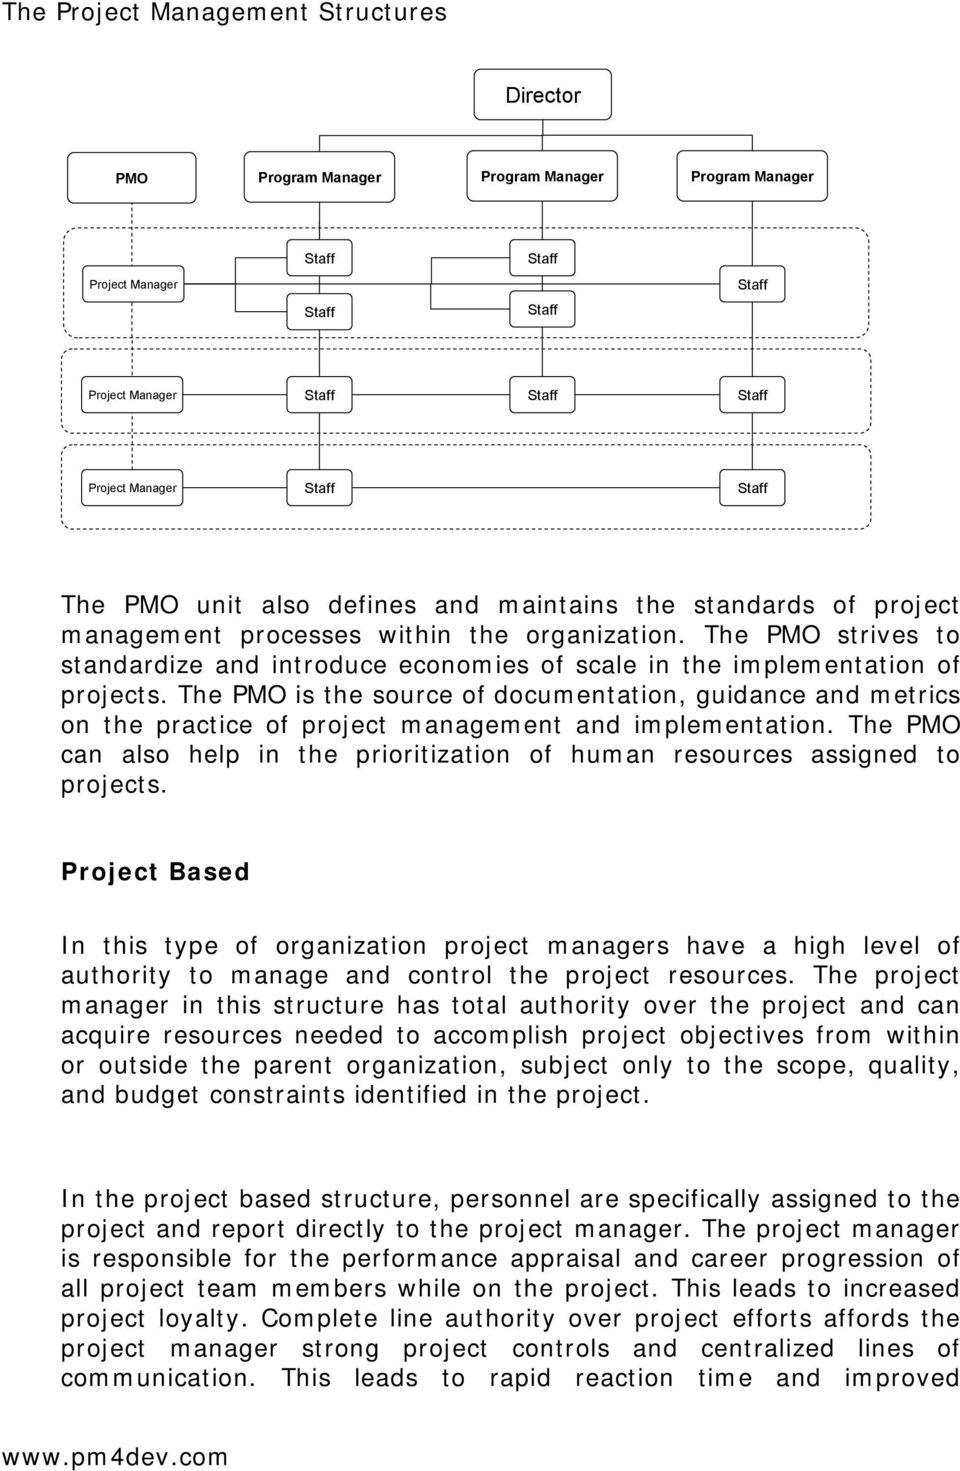 The PMO is the source of documentation, guidance and metrics on the practice of project management and implementation.